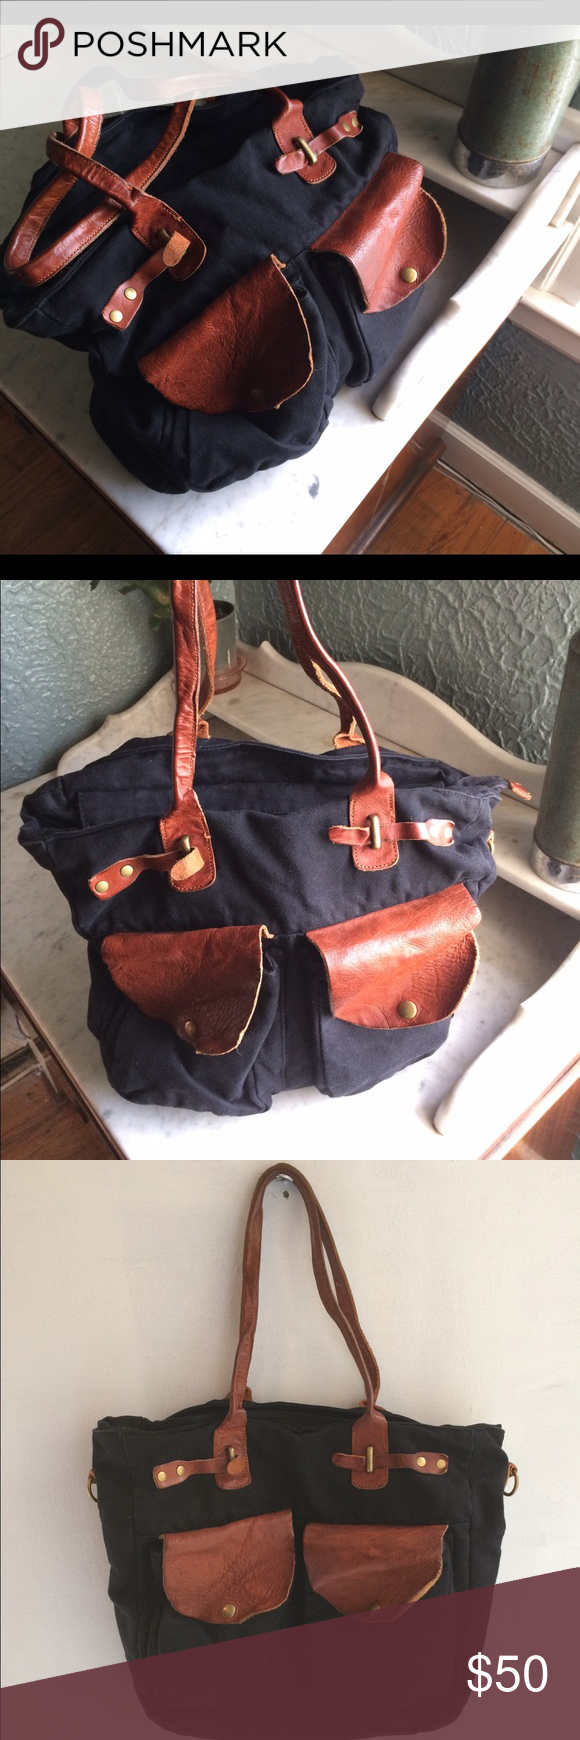 Black canvas and leather Anthropologie bag Made by Jesslyn Blake. This bag has been a great go to travel bag and purse.  Very clean interface and no damage. Black canvas and rustic amber colored leather.                            My Favorite Bag!' Jesslyn Blake Bags Totes